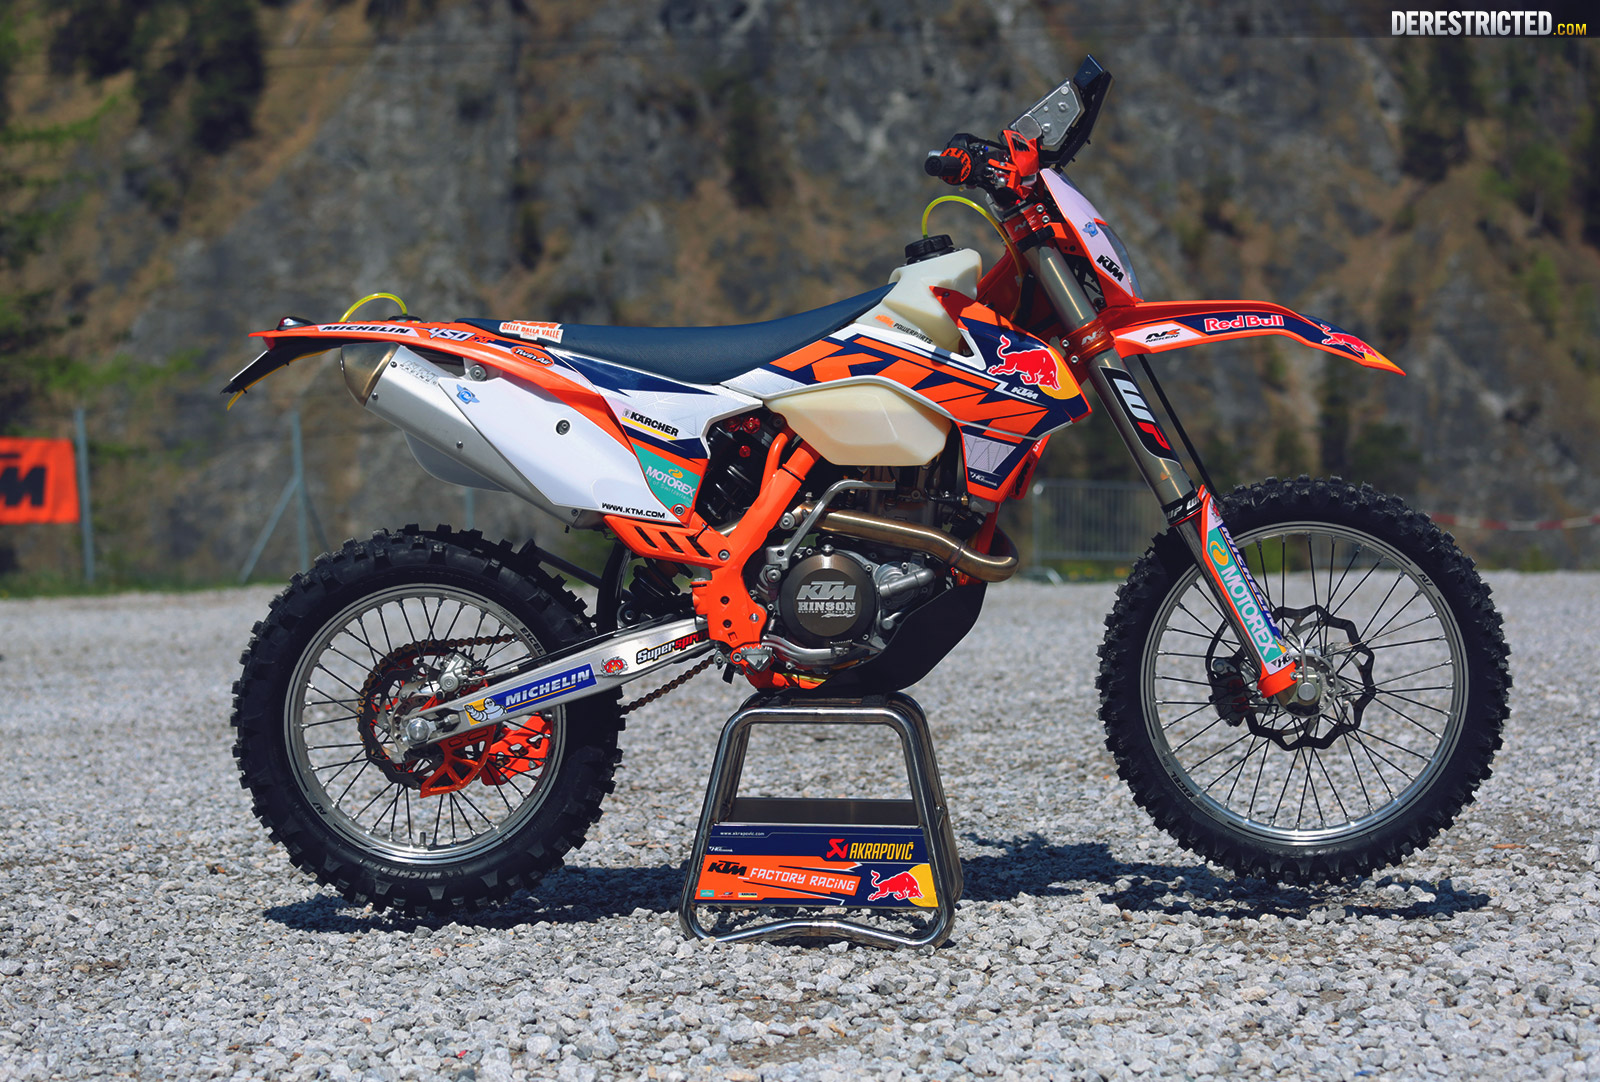 ktm 450 exc matthias walkner s factory sardinian rally bike derestricted. Black Bedroom Furniture Sets. Home Design Ideas